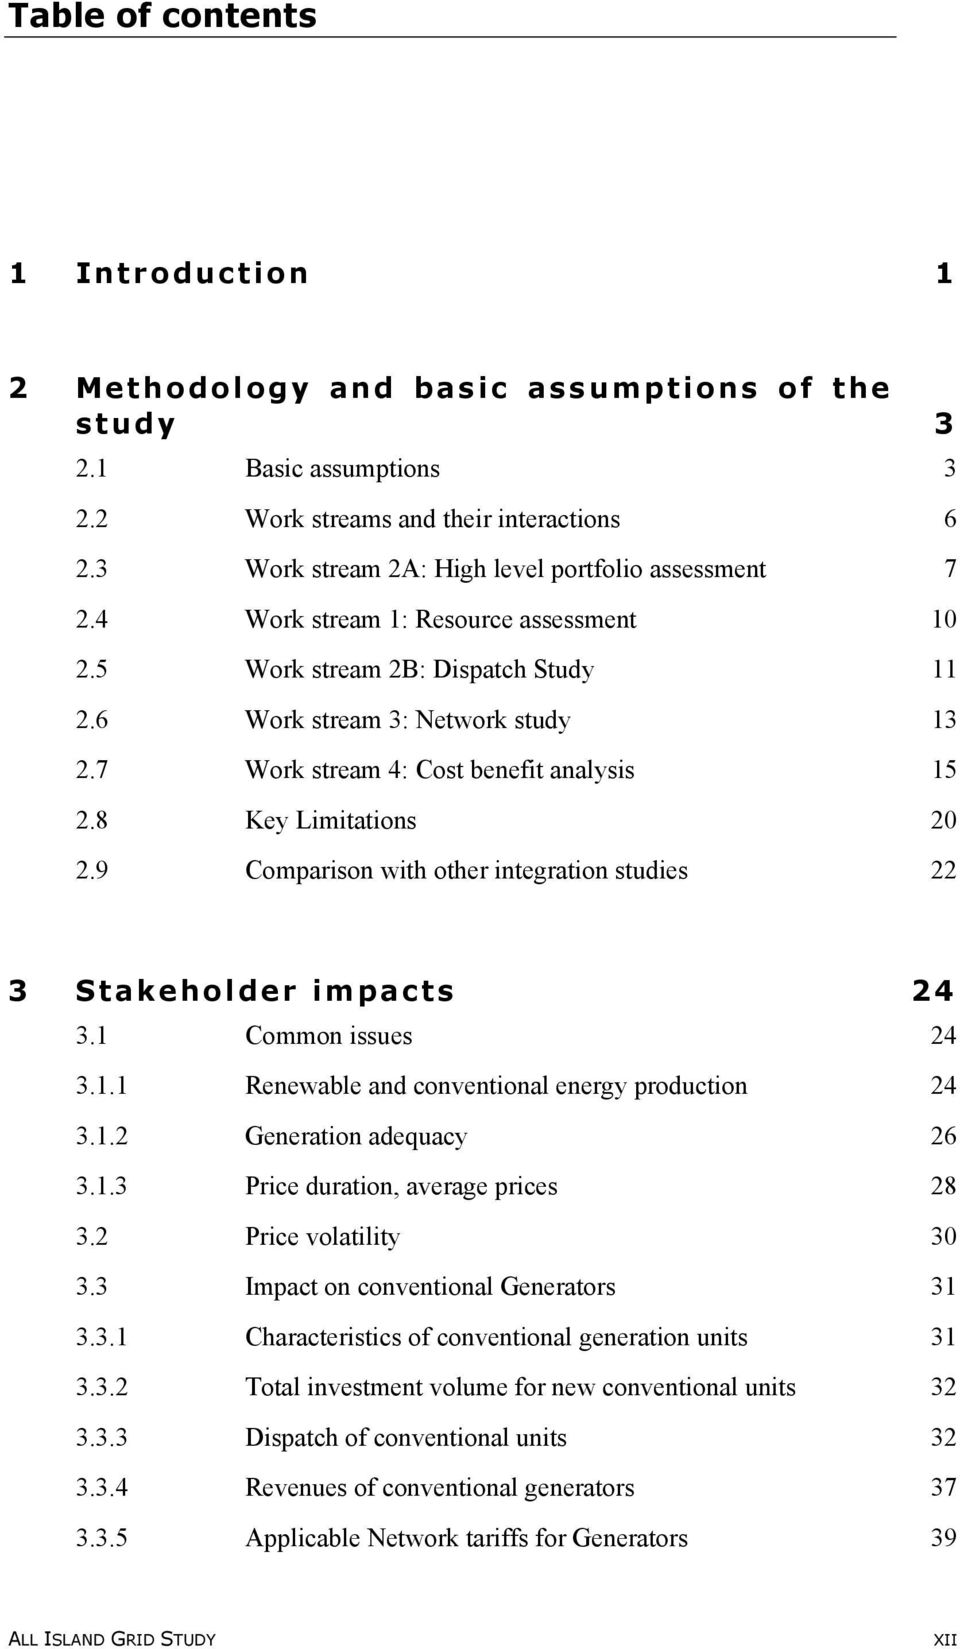 7 Work stream 4: Cost benefit analysis 15 2.8 Key Limitations 20 2.9 Comparison with other integration studies 22 3 Stakeholder impacts 24 3.1 Common issues 24 3.1.1 Renewable and conventional energy production 24 3.